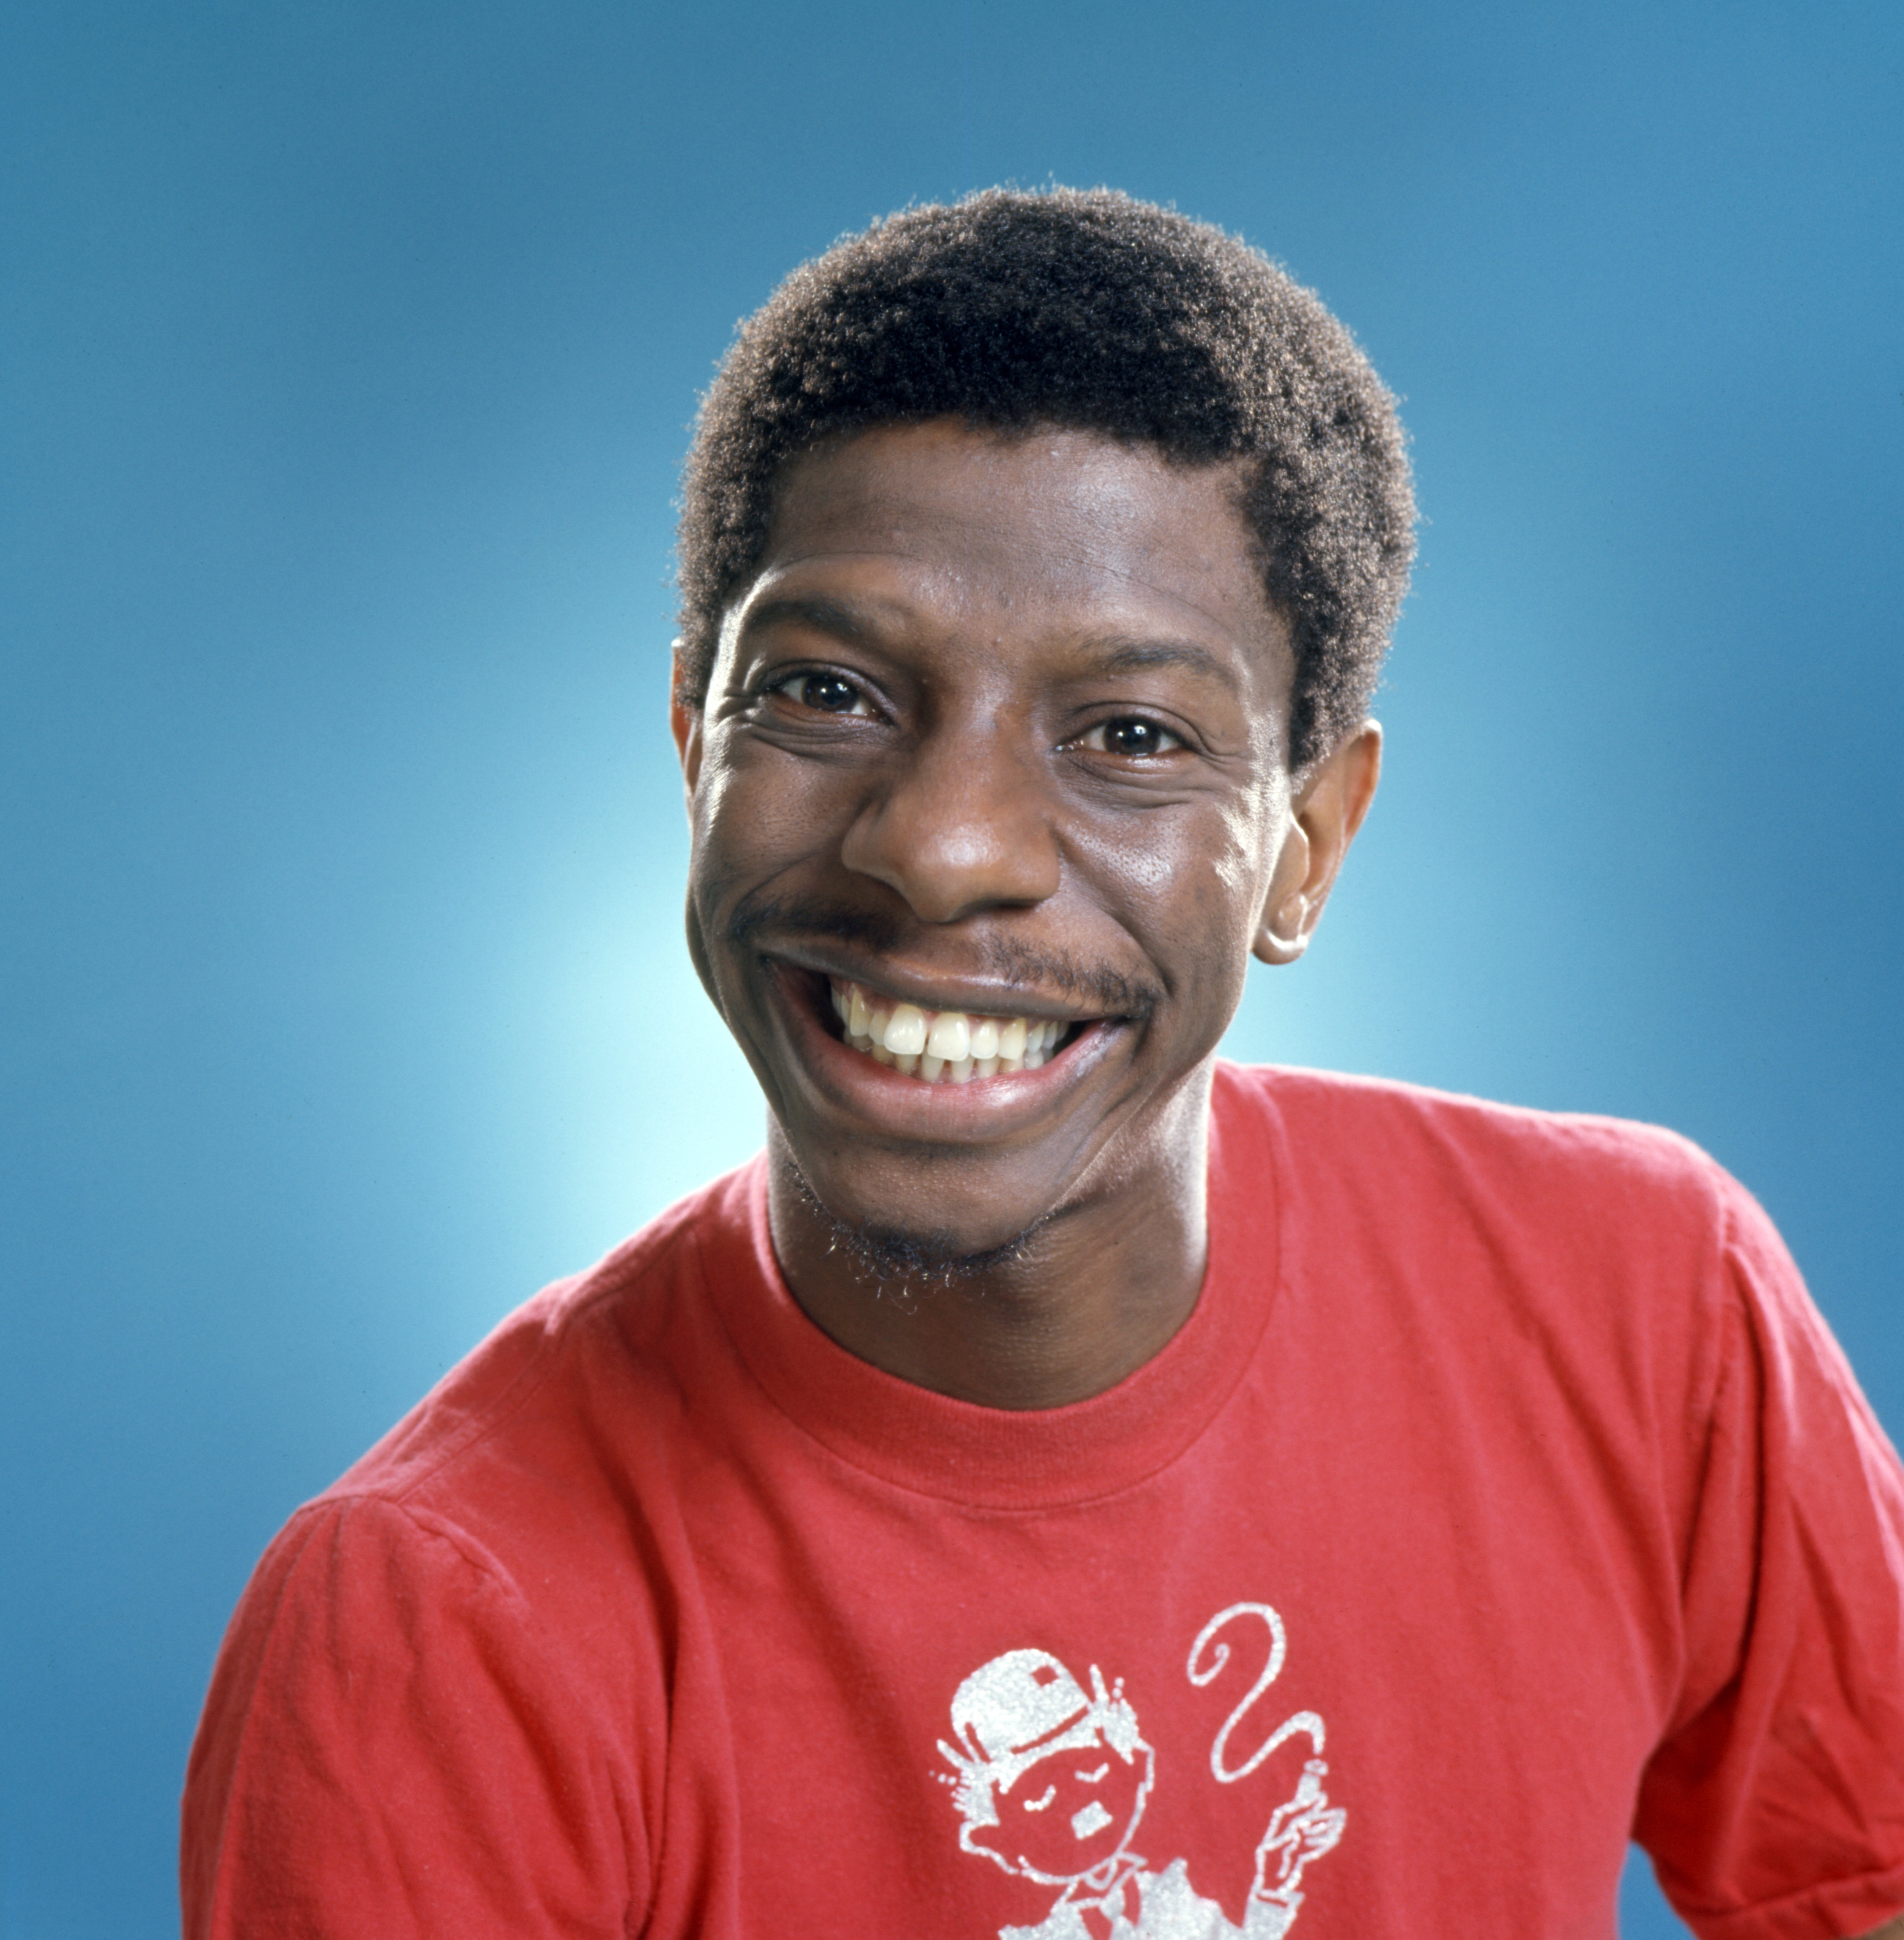 """Jimmie Walker as 'J.J.' Evans in the CBS television sitcom, """"Good Times."""" January 1, 1977 